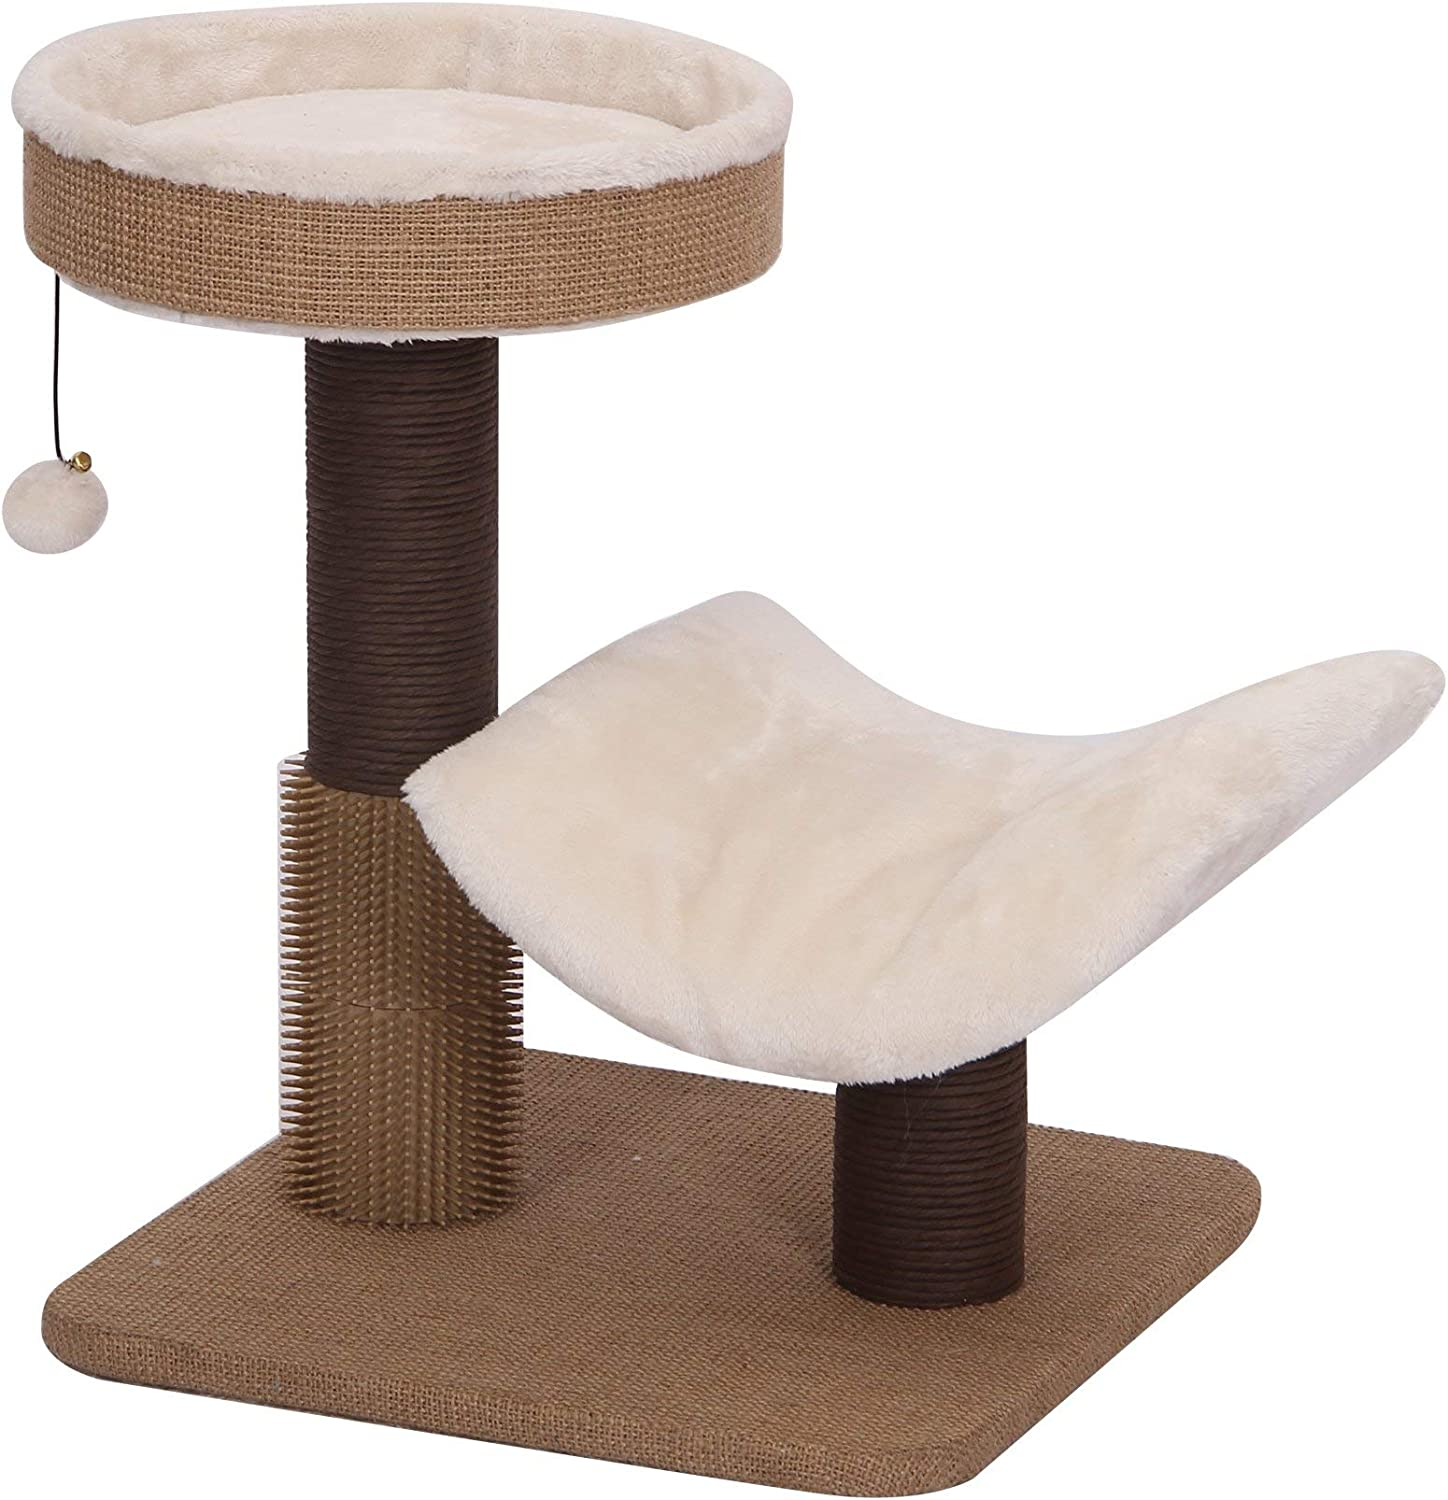 PetPals Group Cushy Jute & Fleece Two Level Cat Tree with Perches & Rubber Massager